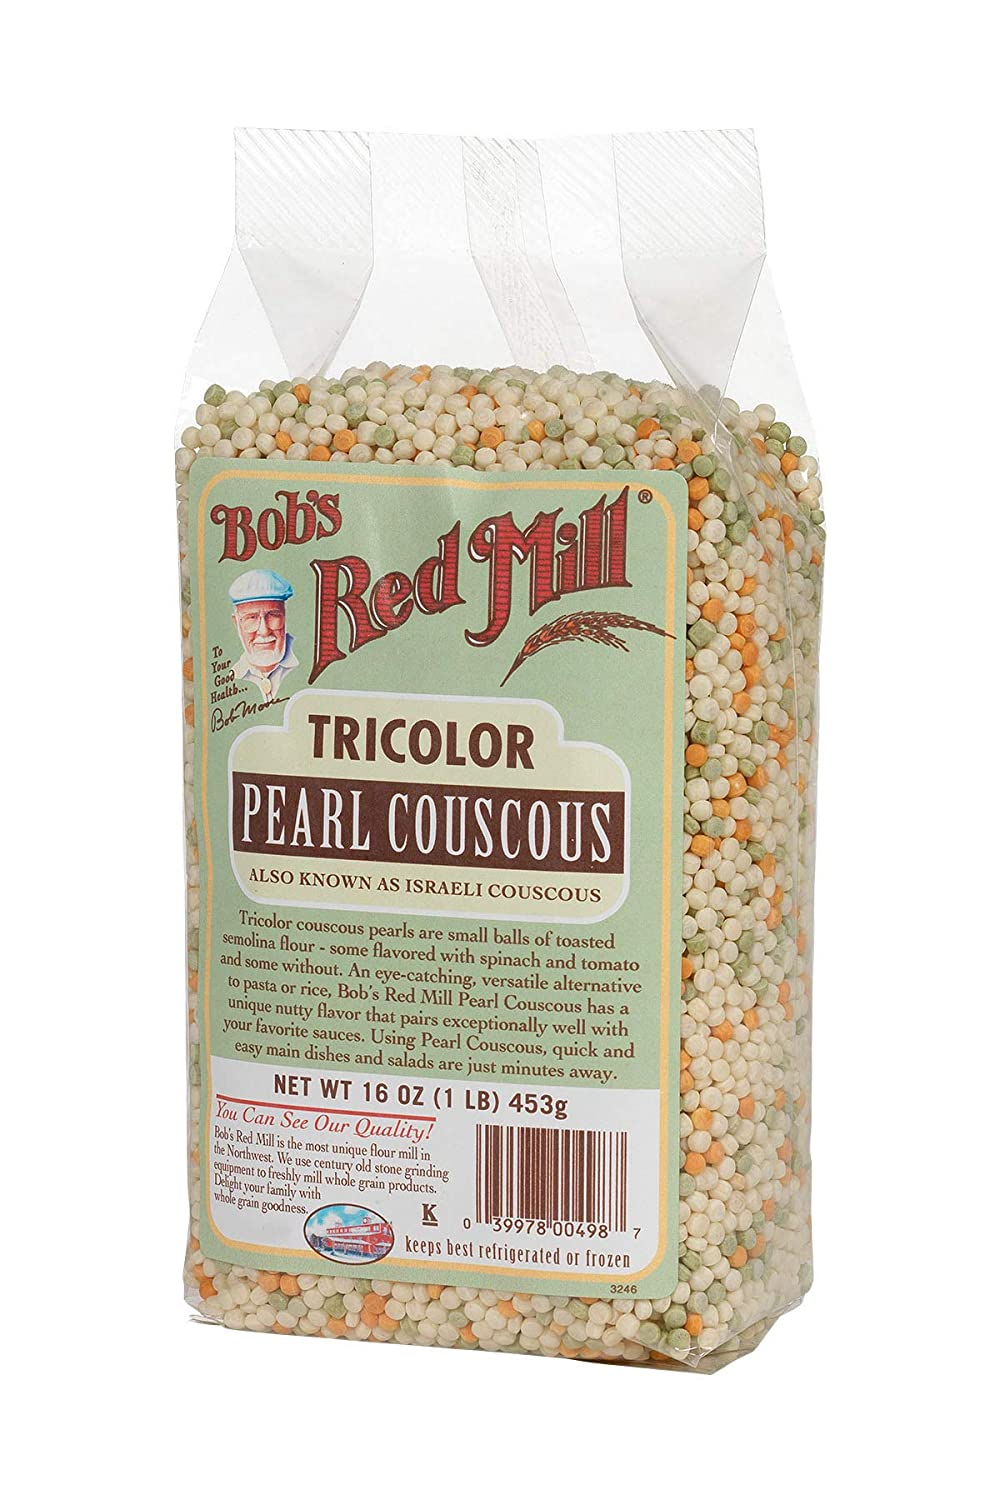 Amazon.com : Bobs Red Mill Couscous Pearl Tri-Color, 16 oz : Grocery & Gourmet Food